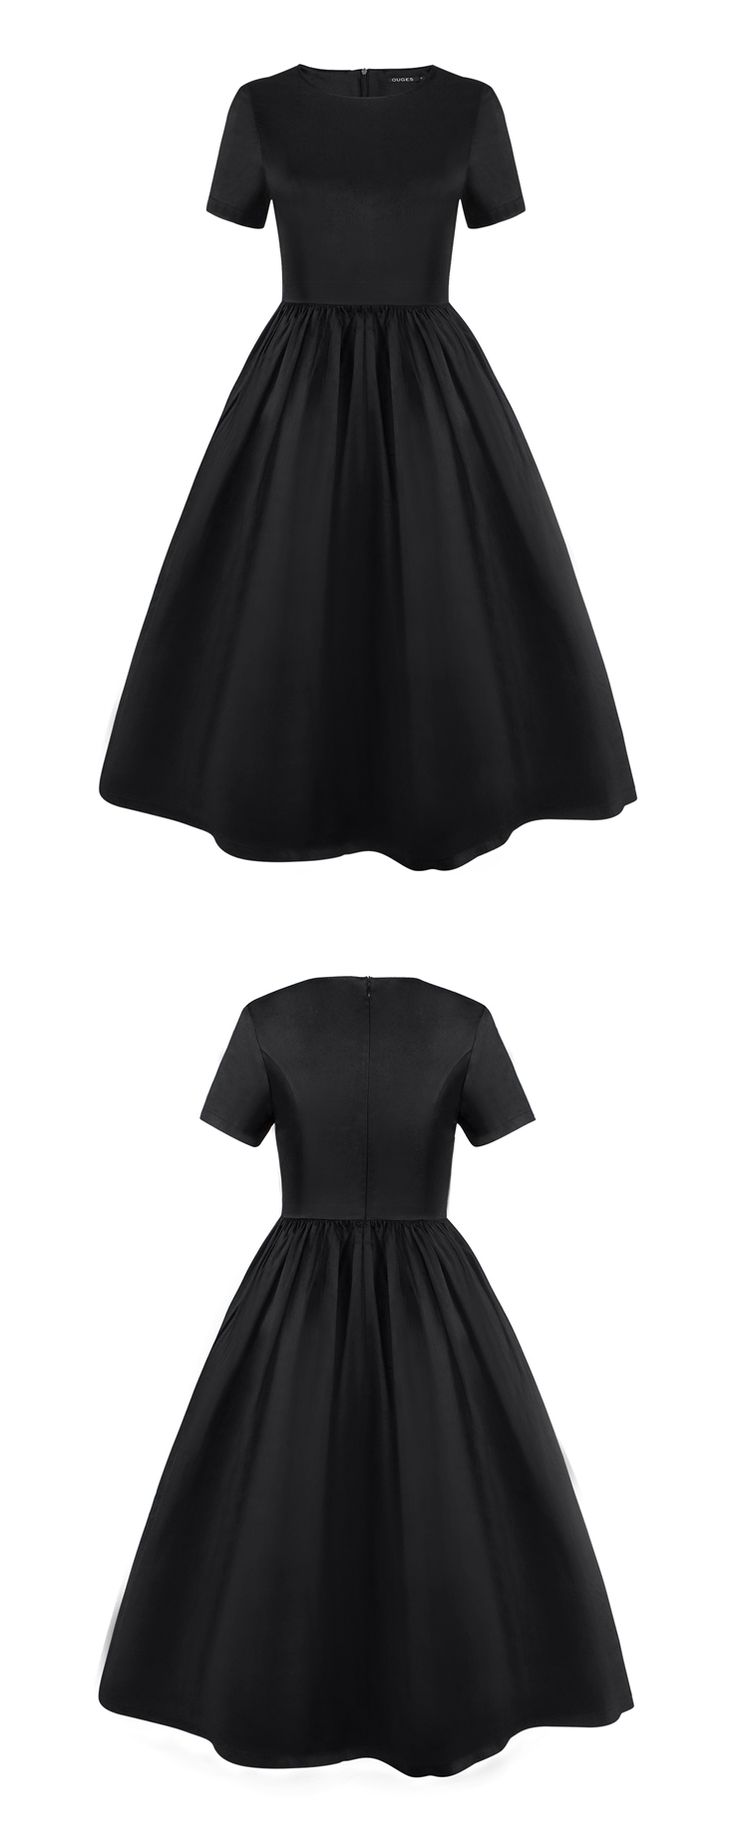 OUGES- Womens 1950s Crew Neck Short Sleeve Vintage Swing Dress- black party dress- $39 at http://www.ouges.net/product/womens-1950s-crew-neck-short-sleeve-vintage-swing-dress/